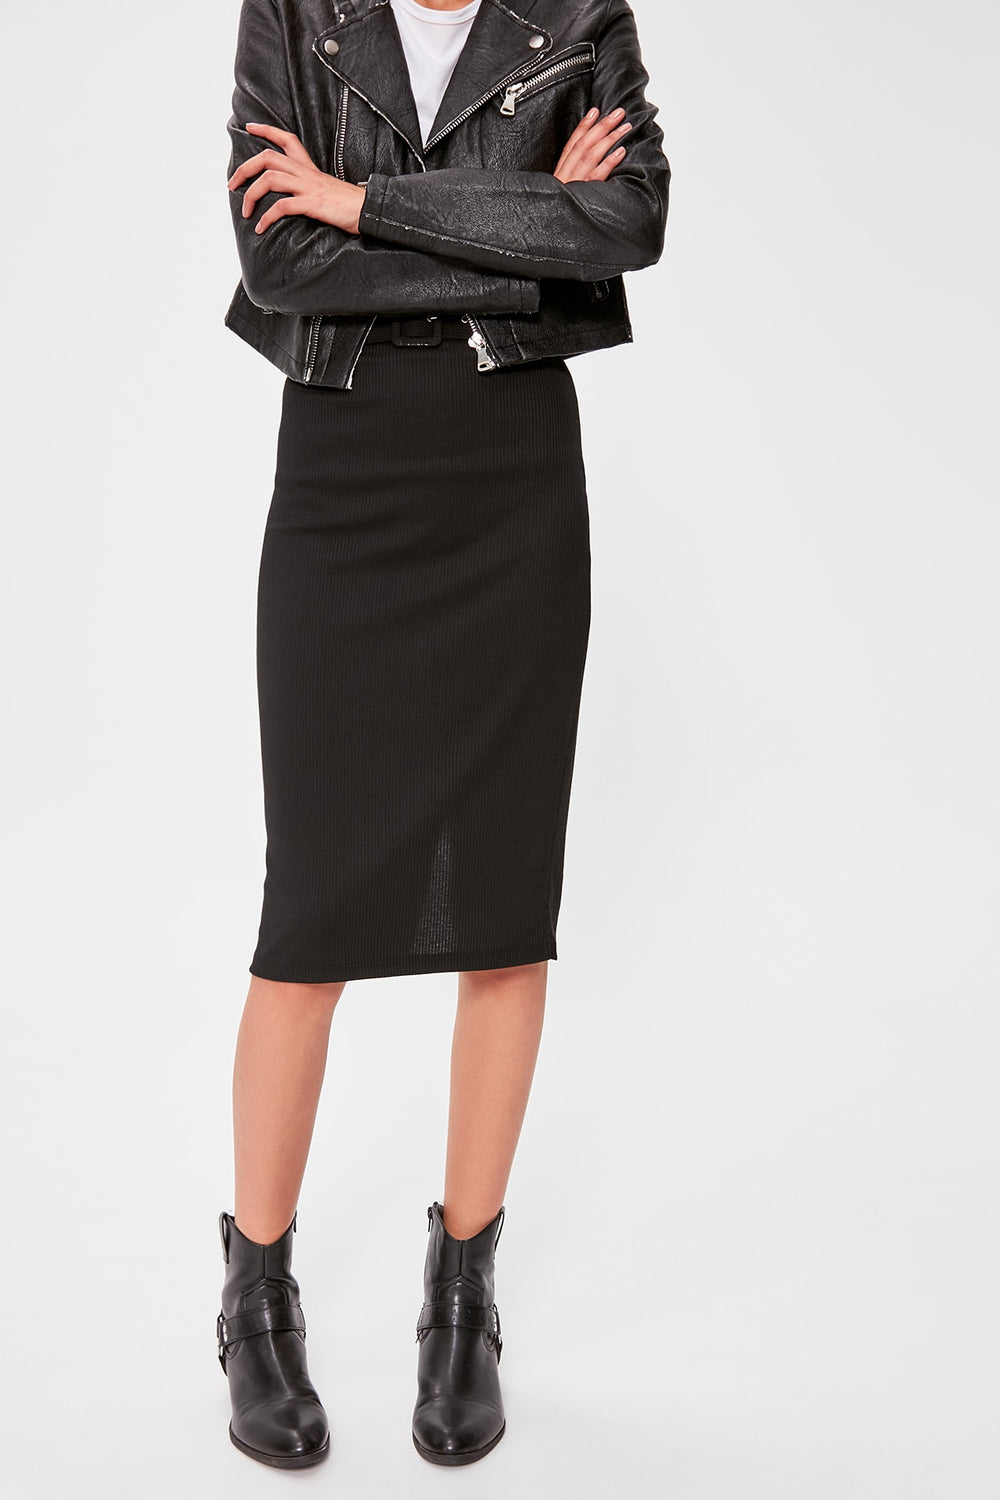 Black Belt Detail Ribbed Knit Skirt - Top Maxy